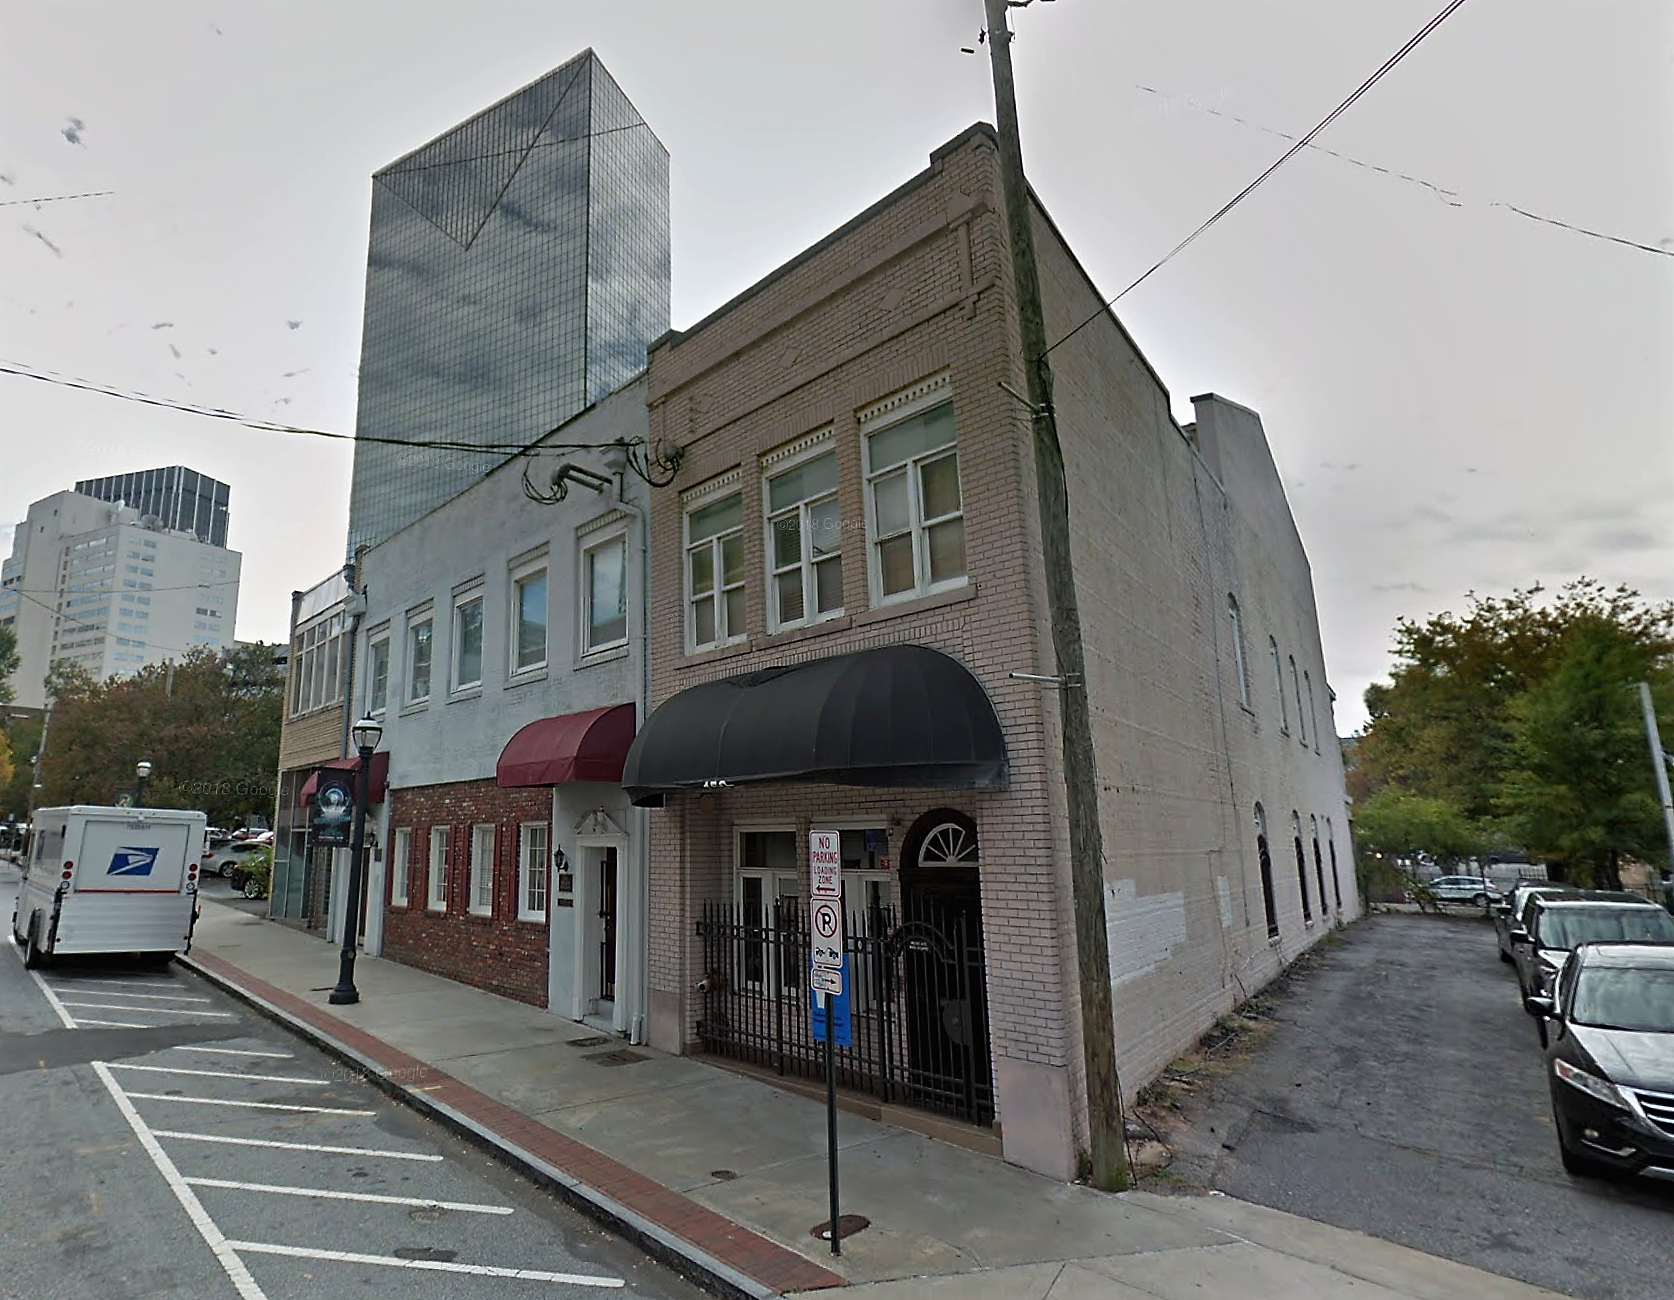 A picture of 152 Nassau Street, an aging grey brick building with a black awning, looking small in the shadow of a downtown skyscraper.